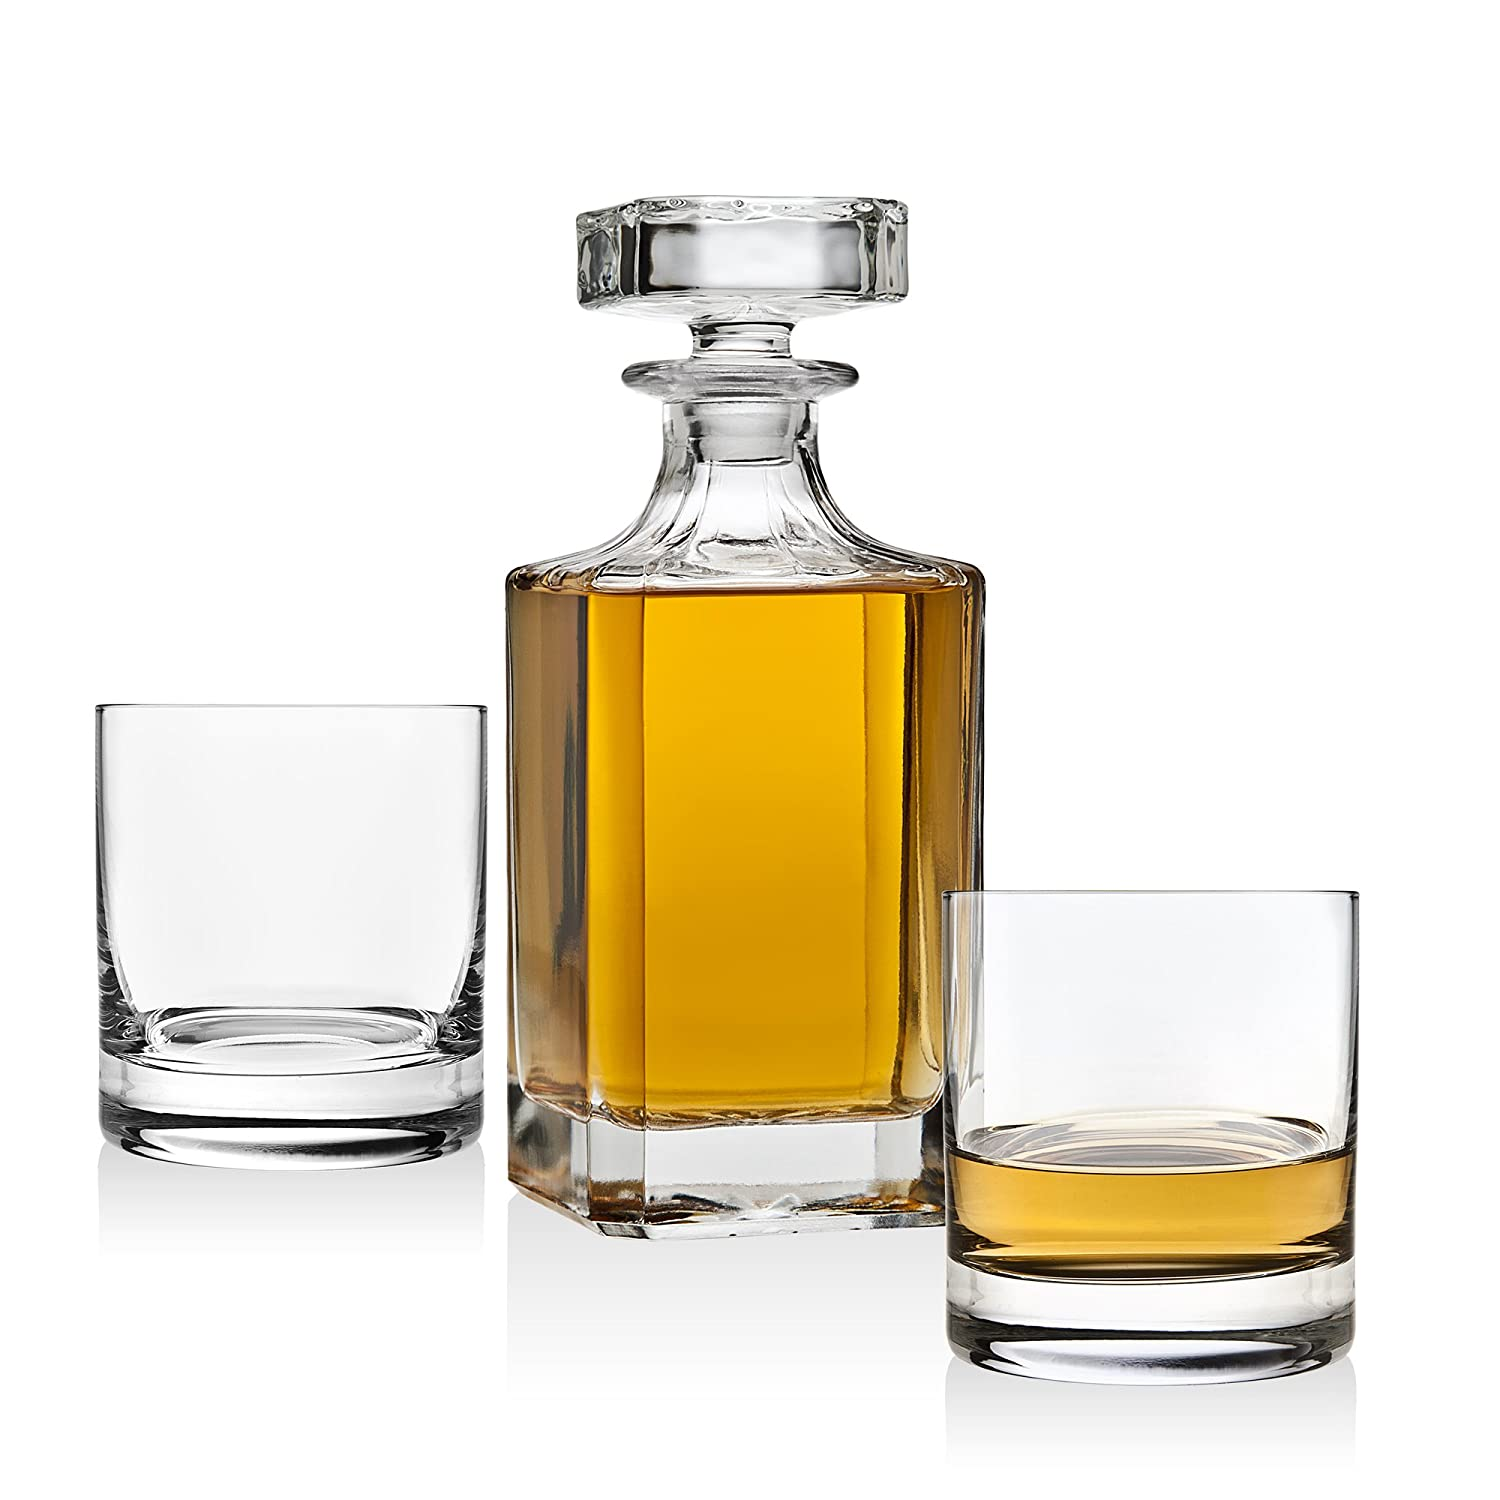 Whiskey Decanter set for Liquor Scotch Bourbon or Wine, Includes 2 DOF whisky glasses Lefonte